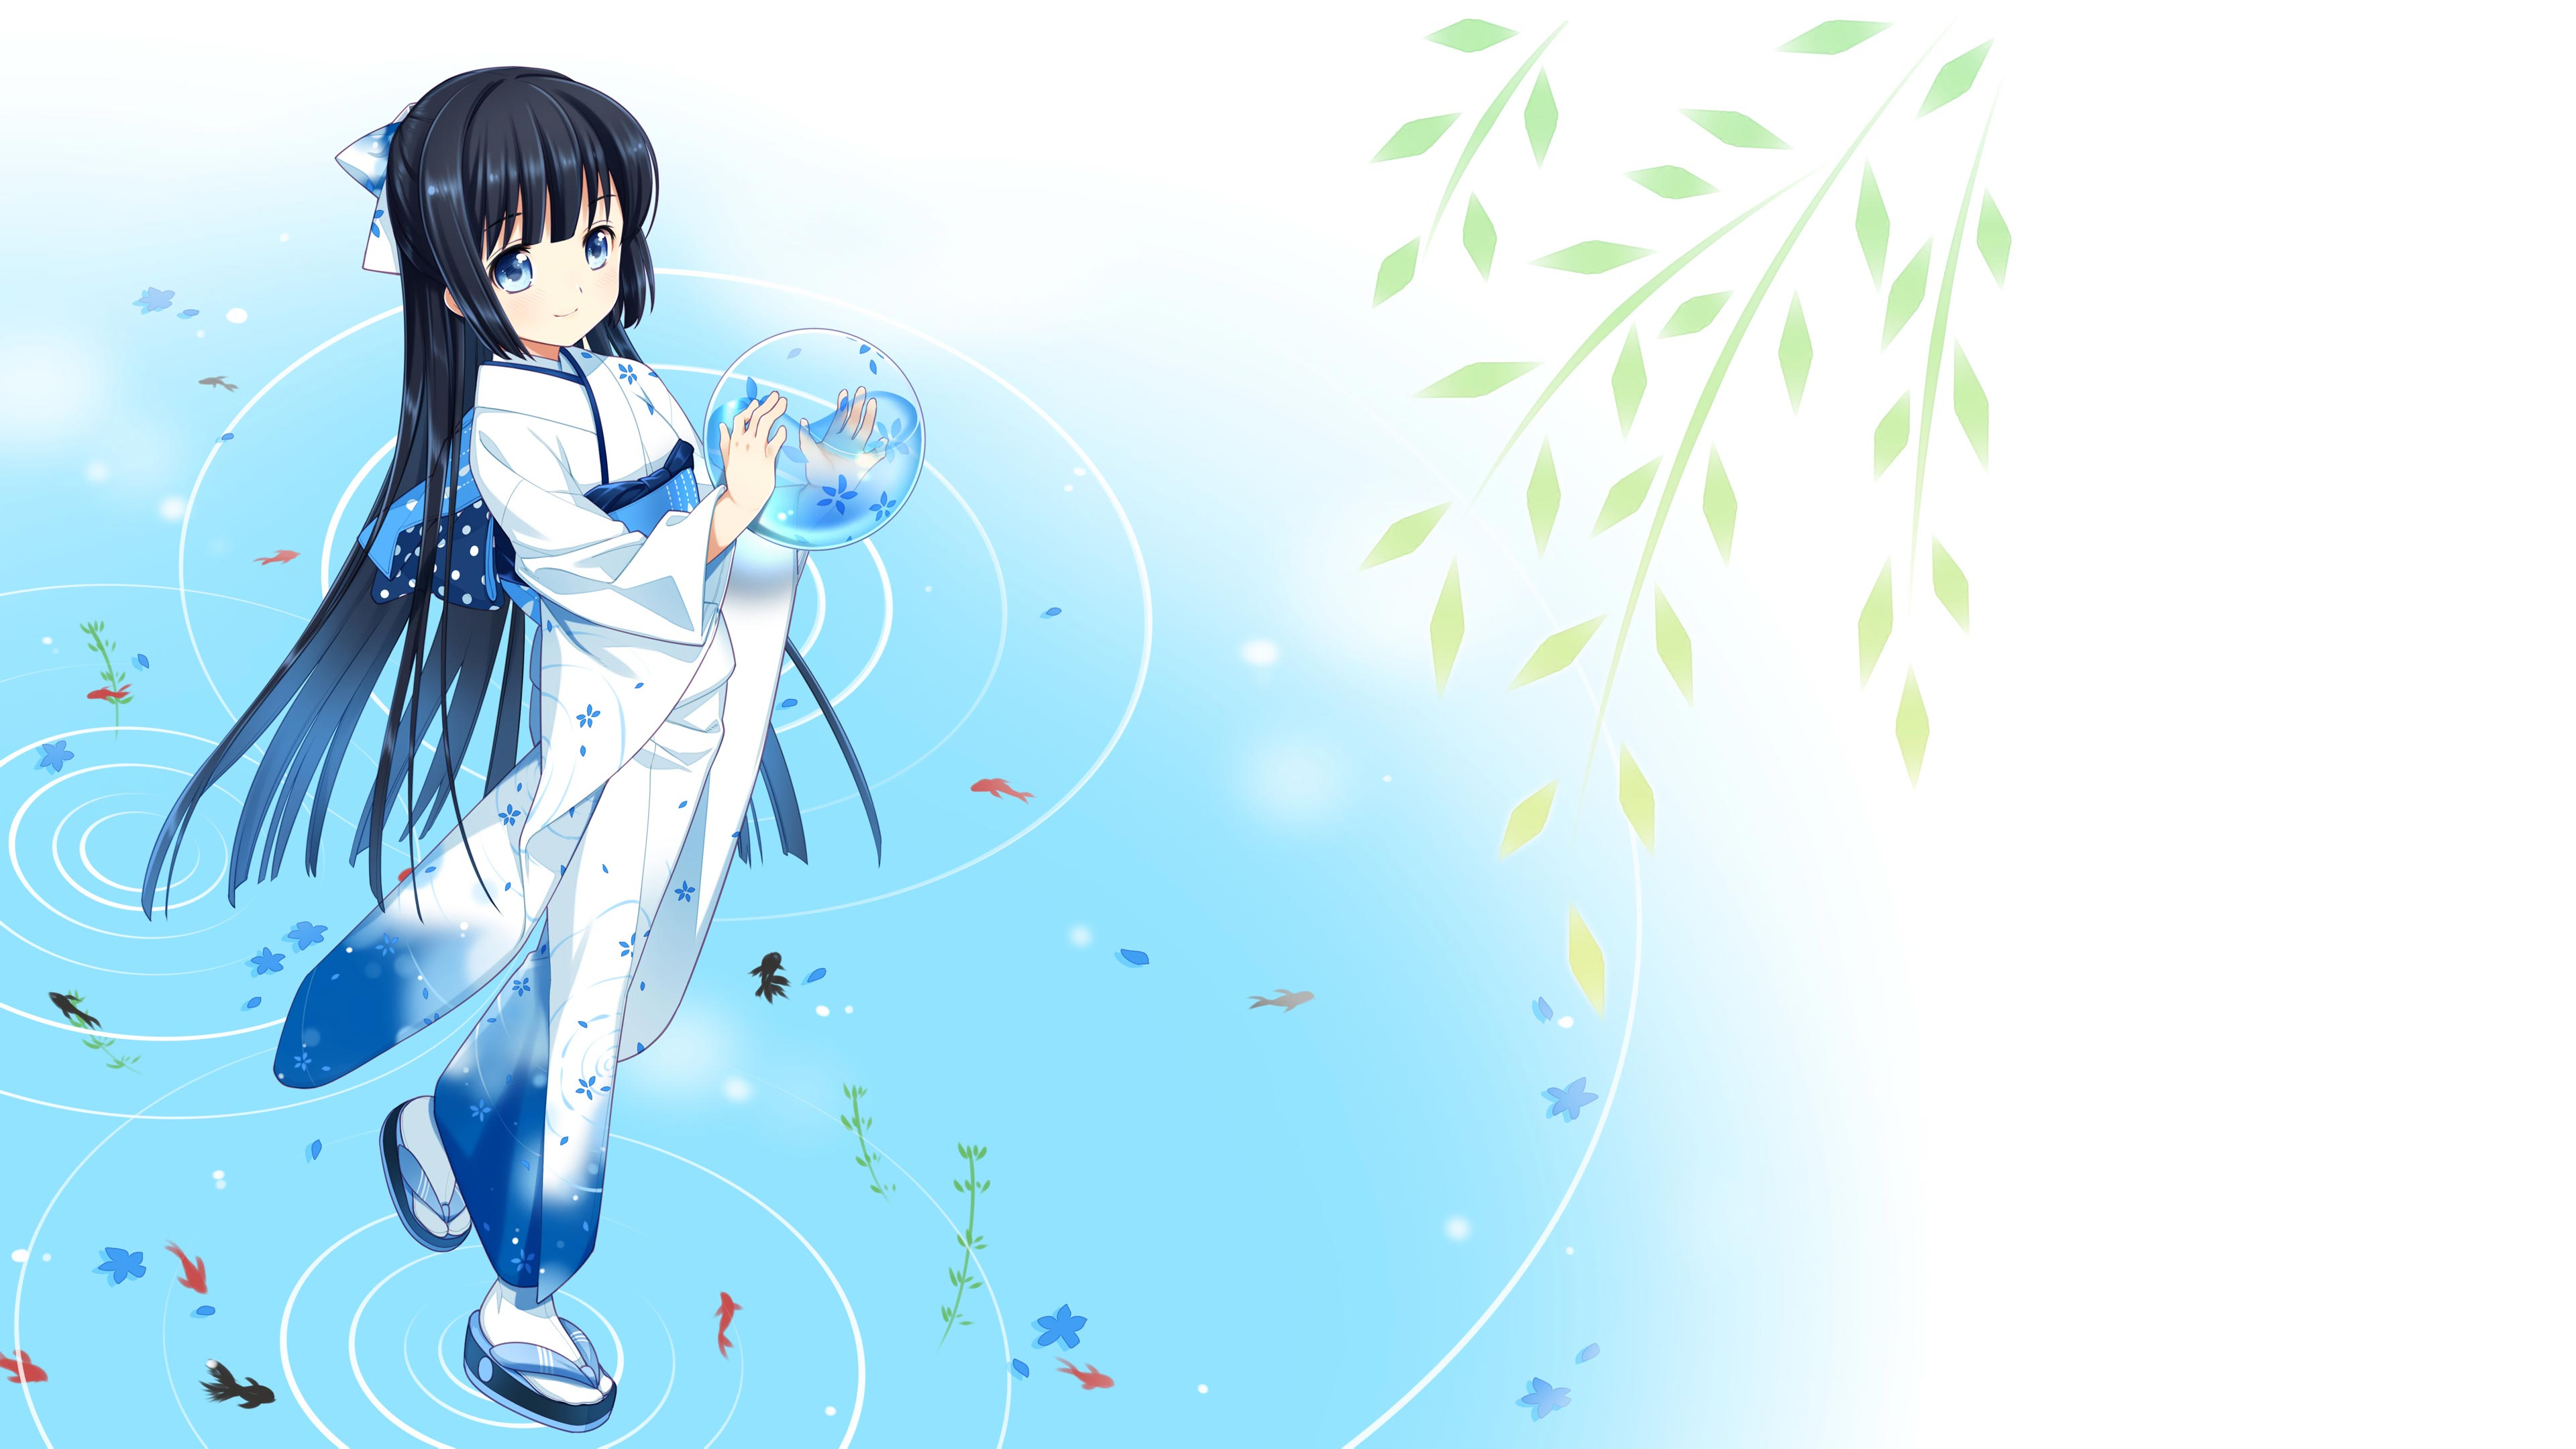 Anime girl wallpapers high resolution pixelstalk net - Cute anime girl pictures ...